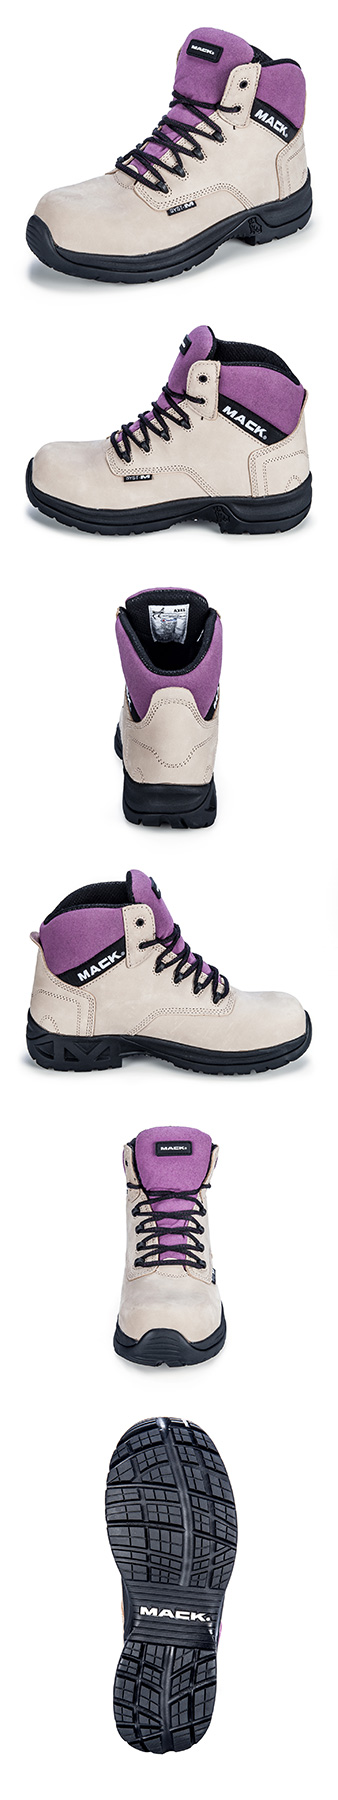 Images of ladies (purple and beige) workwear boots from multiple angles, photographed against a pure white background.